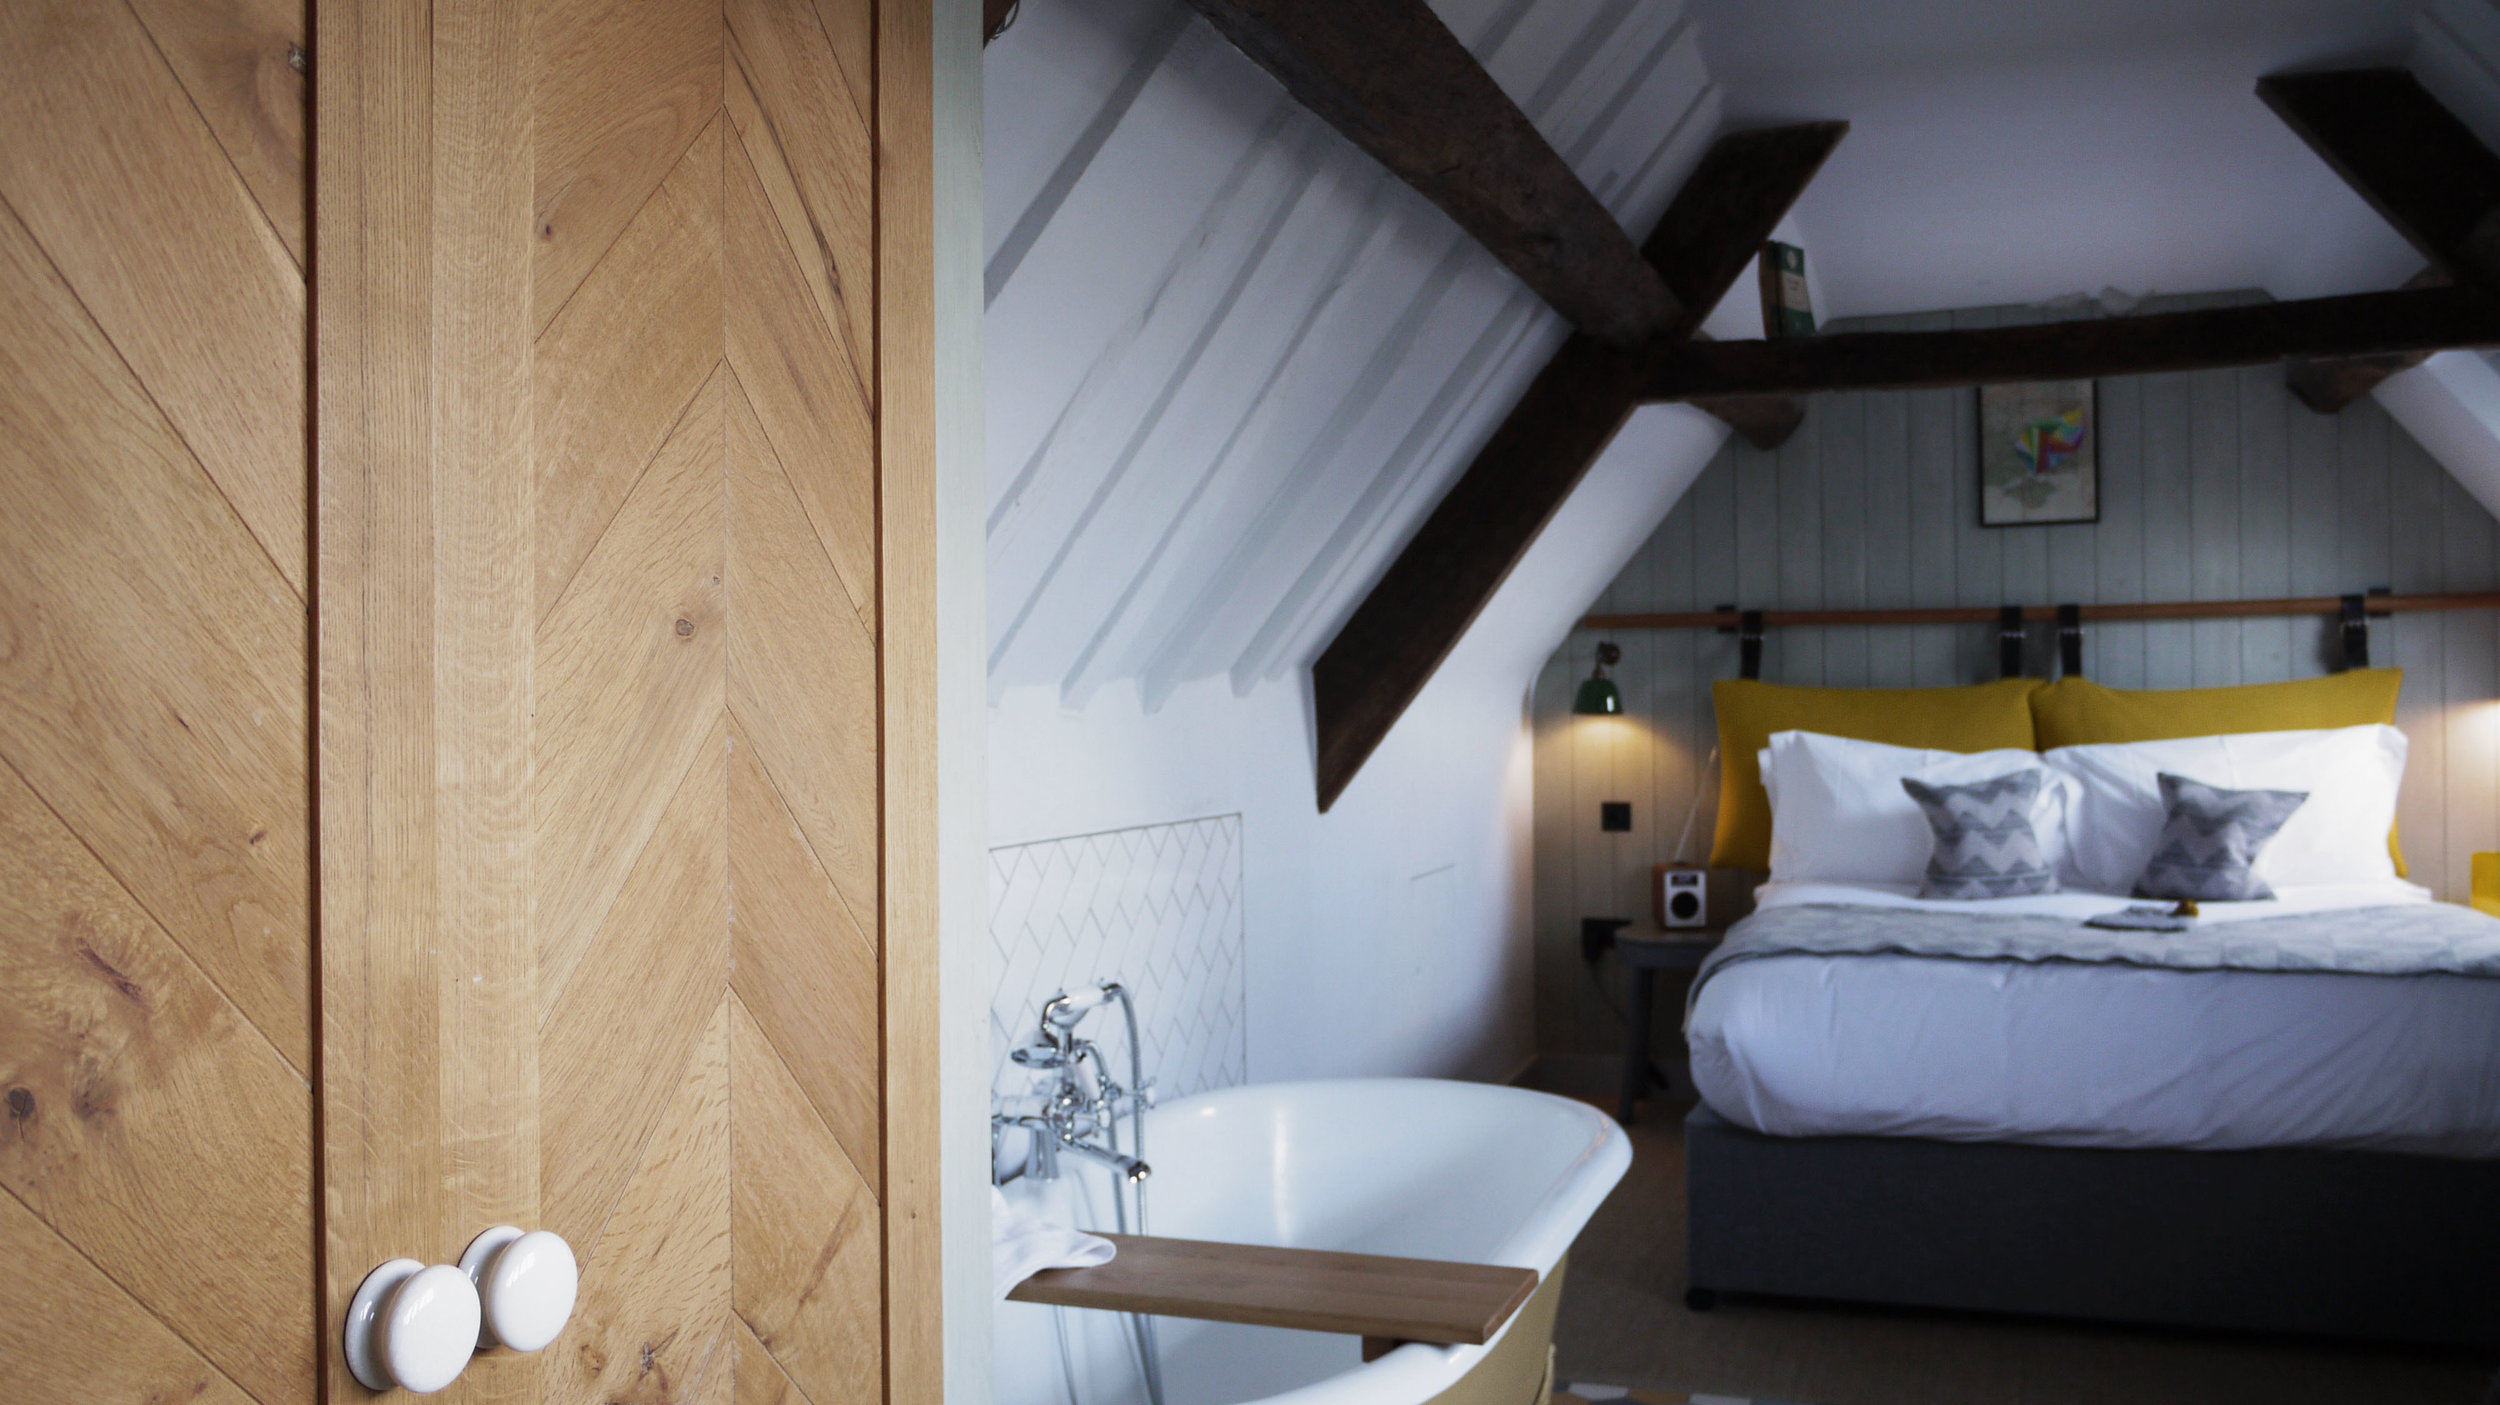 On our most recent stay we were lucky enough to have room 12 which had a freestanding bath which was such a nice feature to the room. The bed was really big and super comfy with some beautiful additional features – including  Tori Murphy cushions.